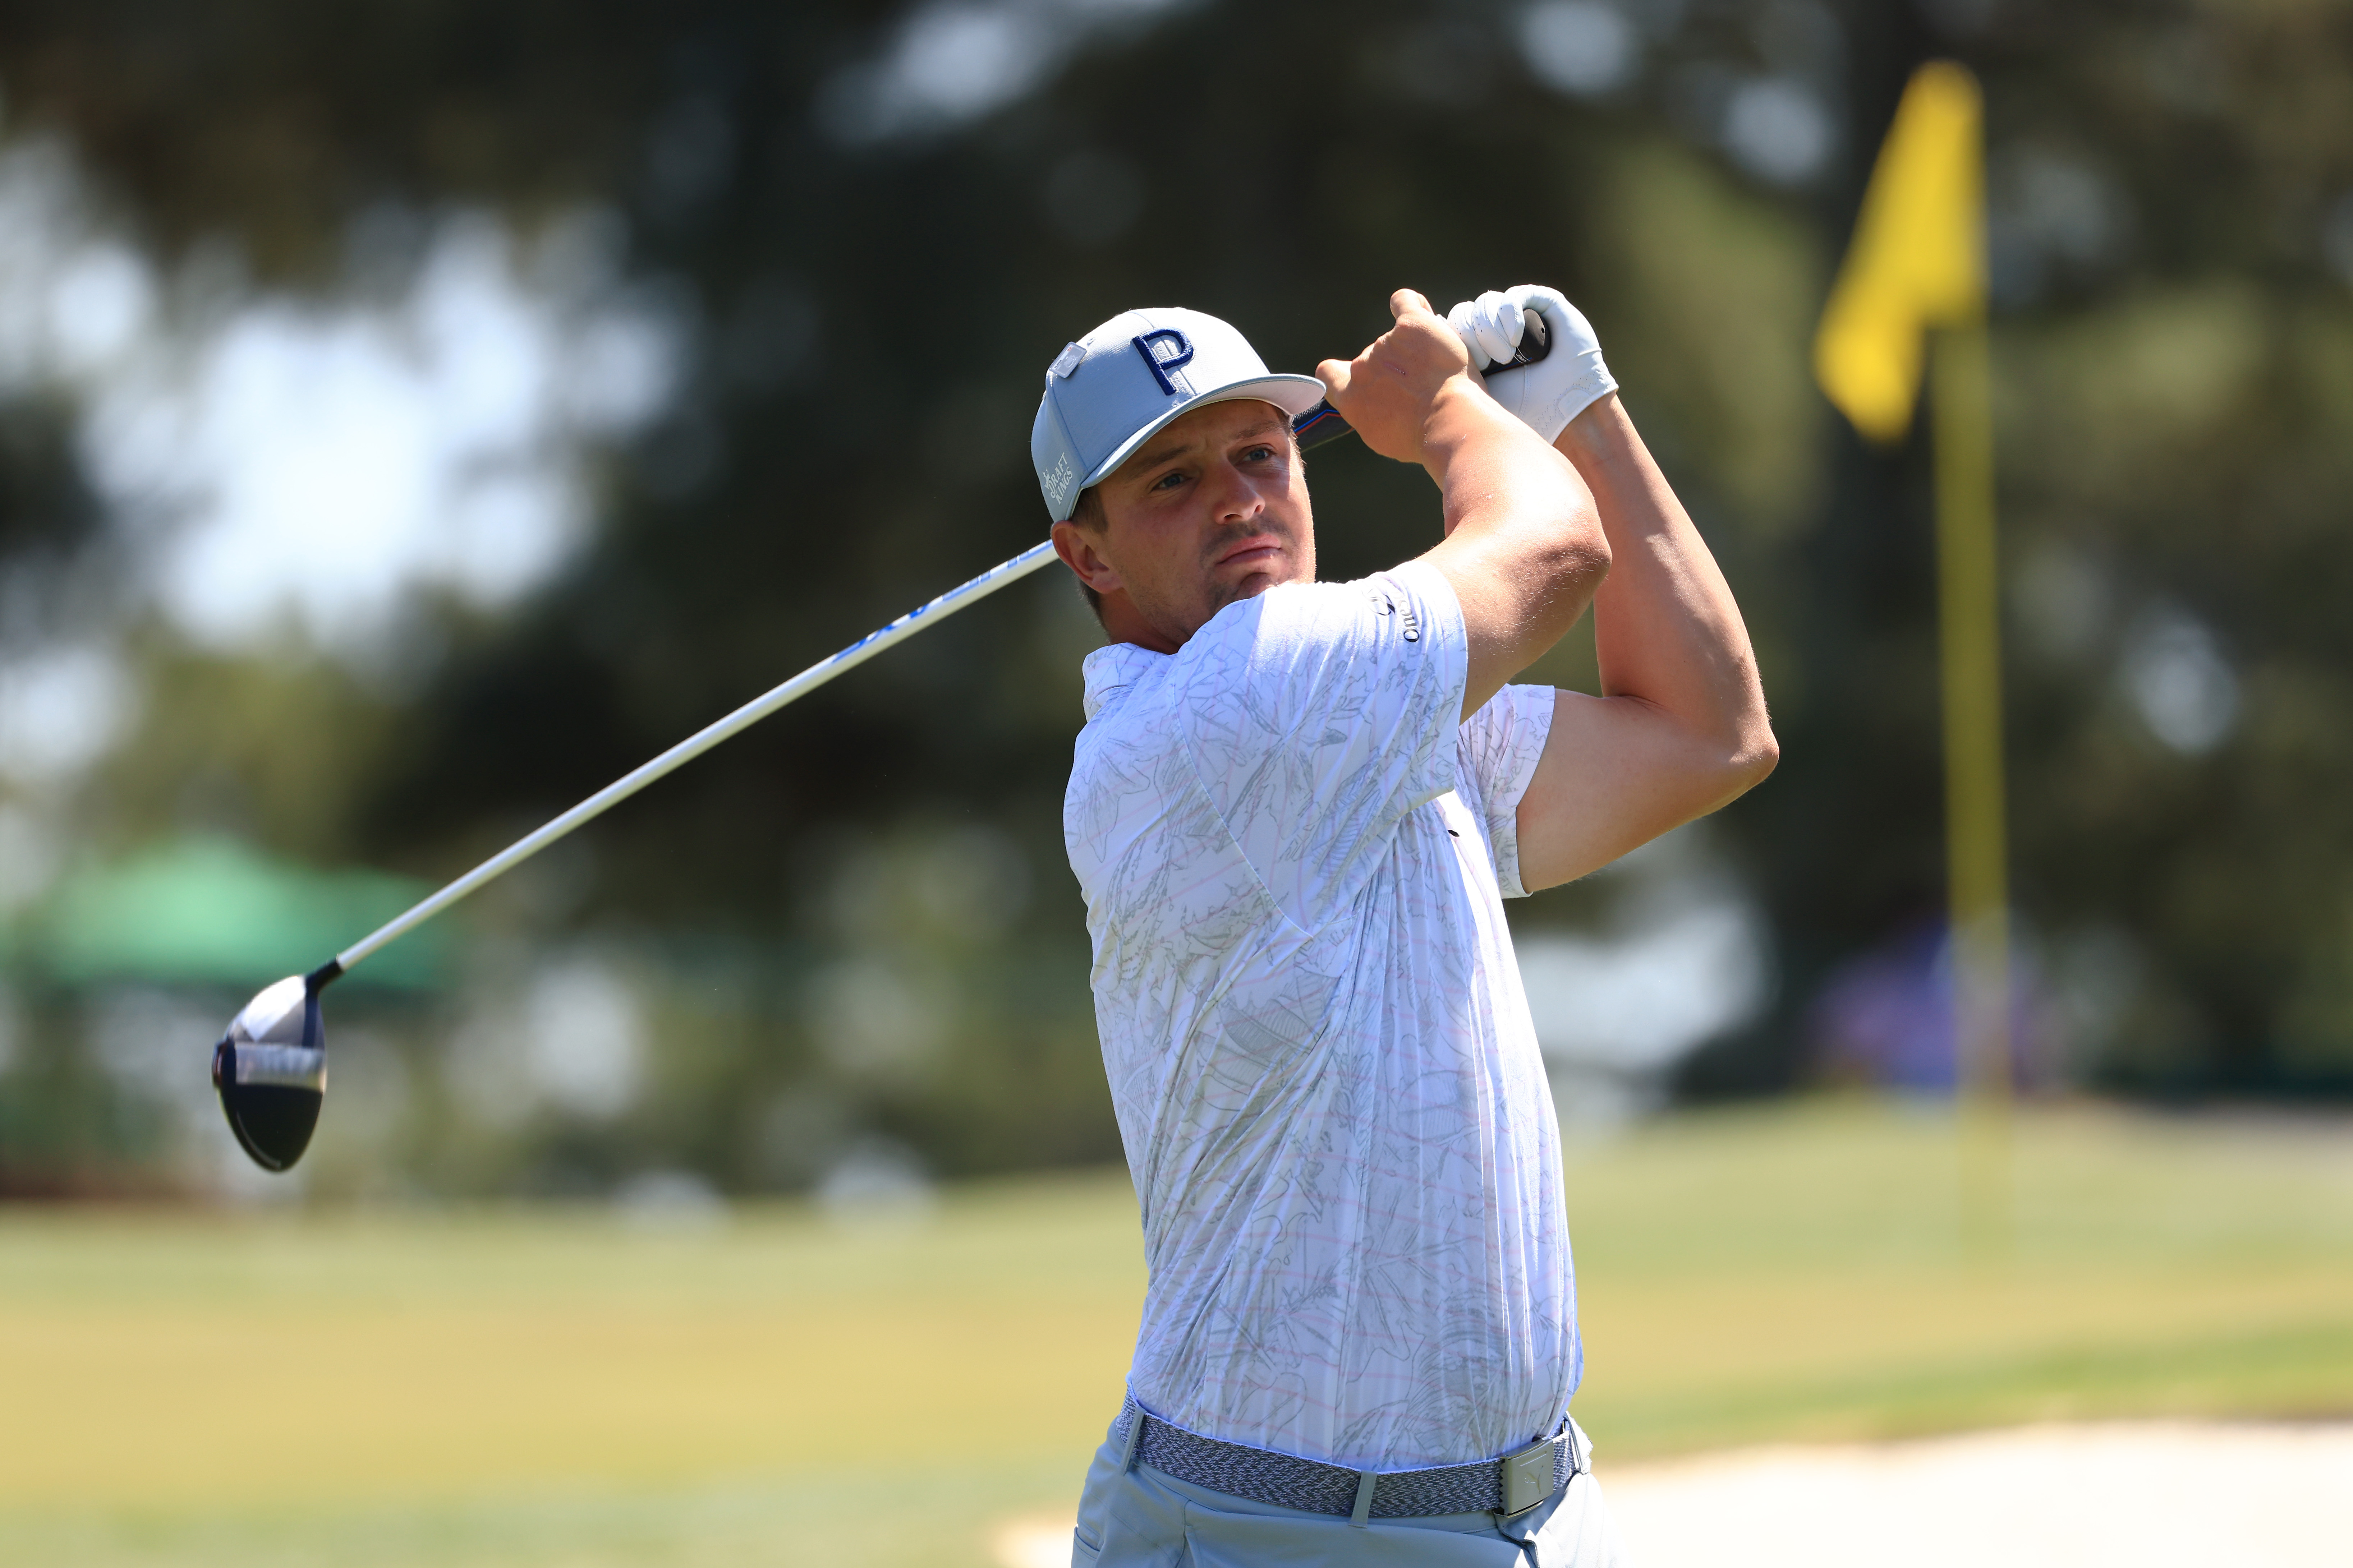 Bryson DeChambeau of the United States plays his shot from the third tee during a practice round prior to the Masters at Augusta National Golf Club on April 05, 2021 in Augusta, Georgia.